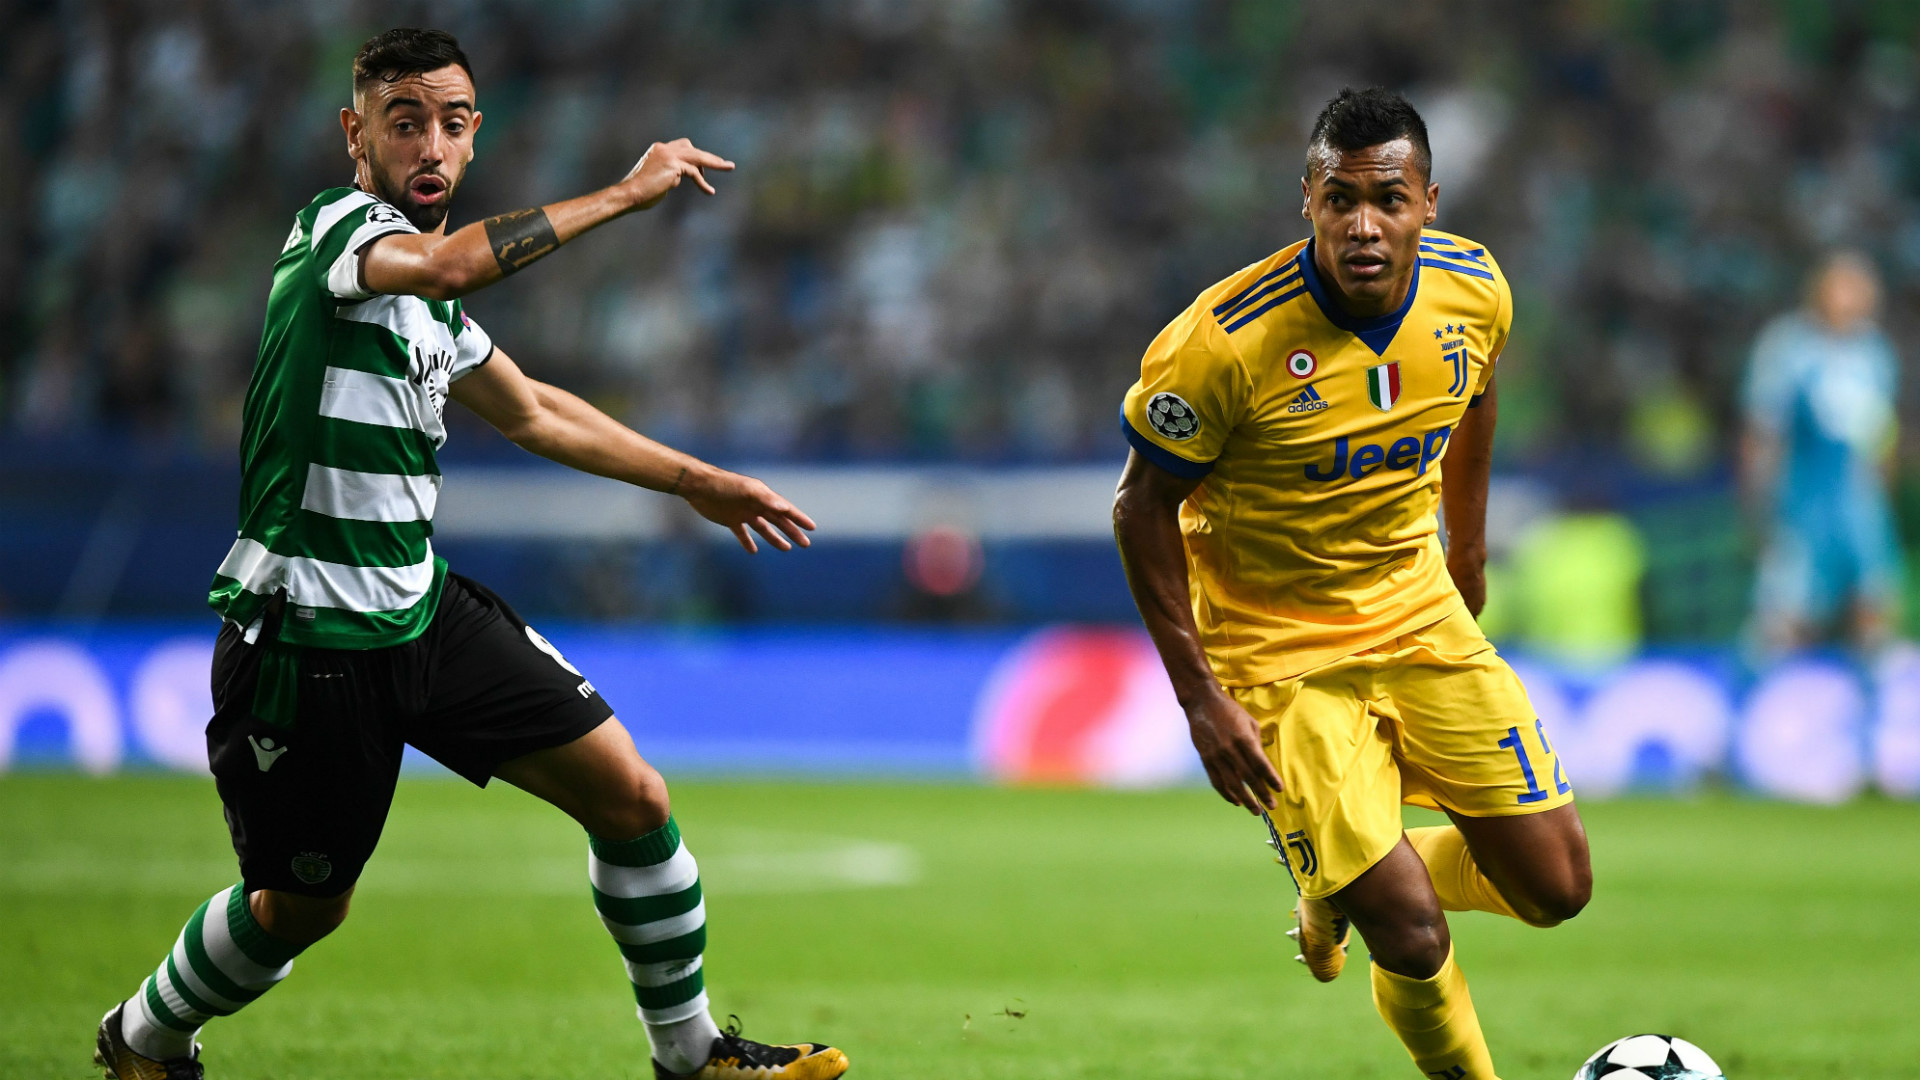 Bruno Fernandes Alex Sandro Sporting Juventus Champions League